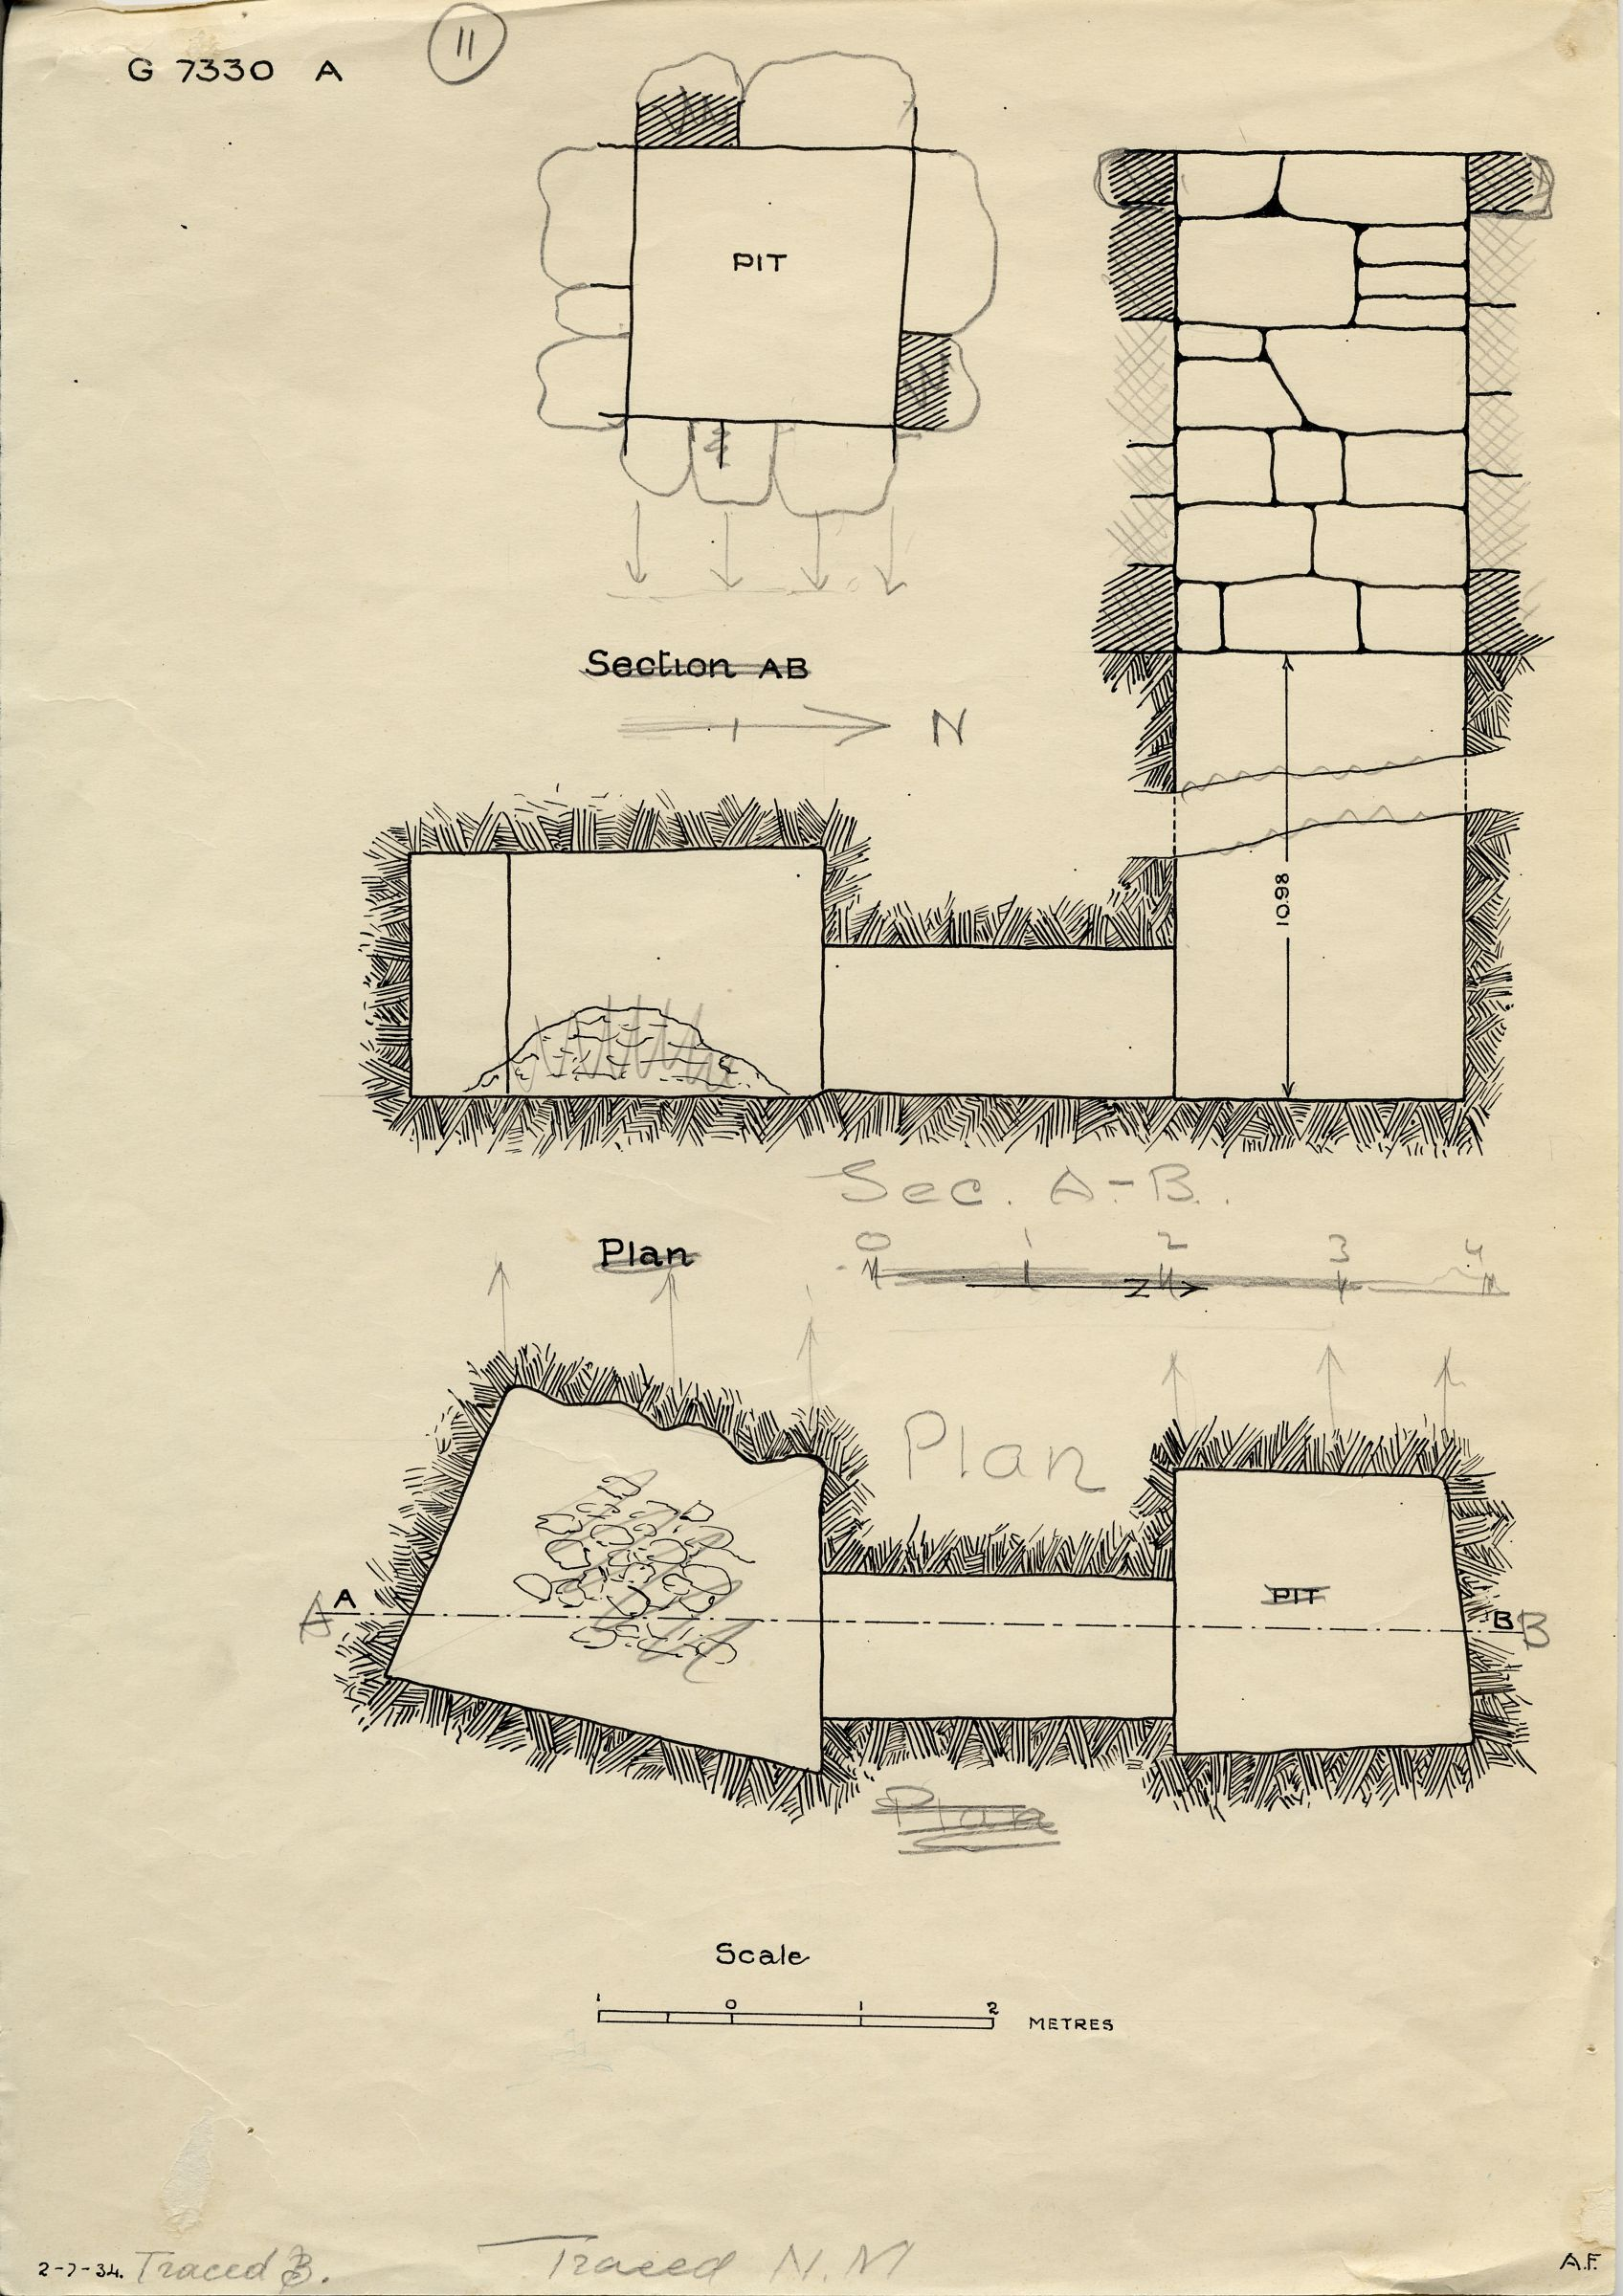 Maps and plans: G 7330-7340: G 7330, Shaft A